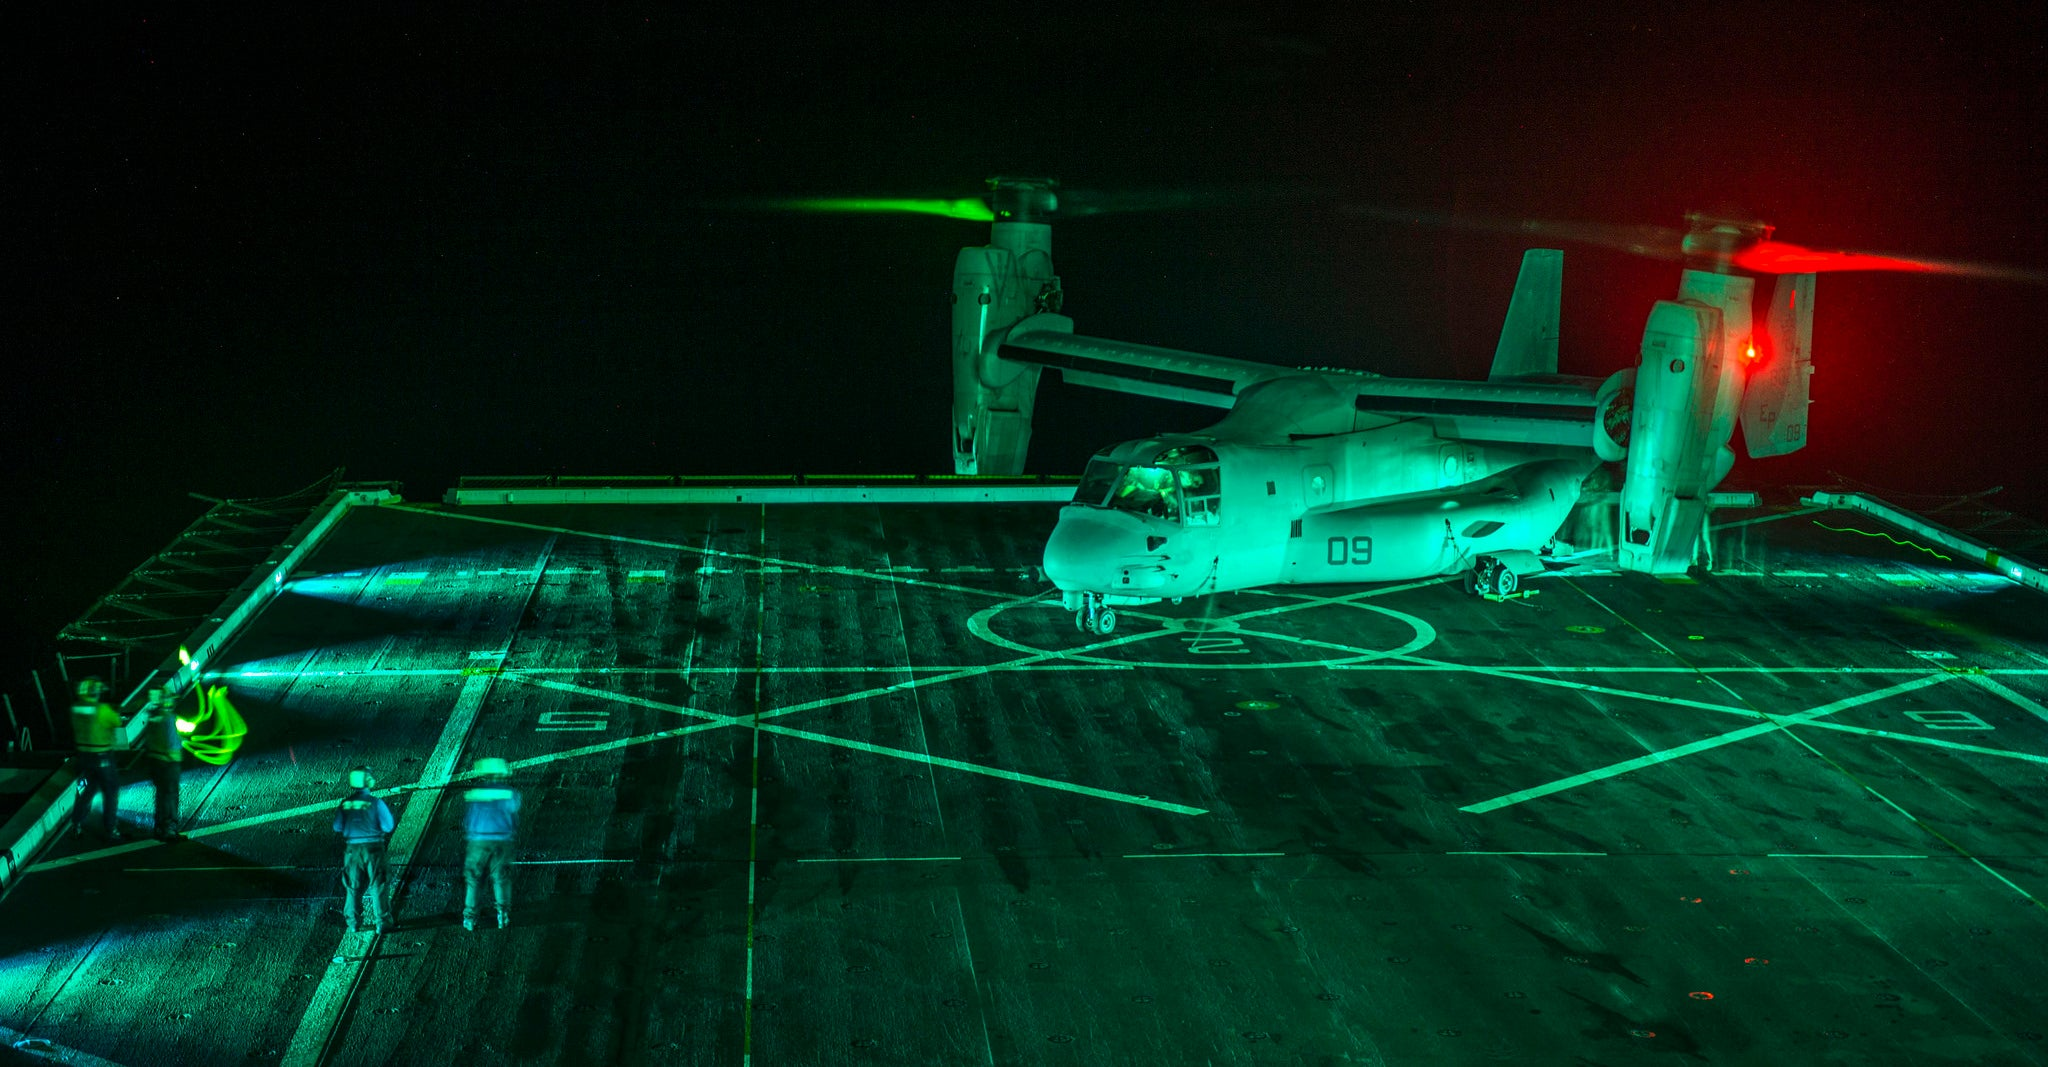 Awesome Photo Of The V-22 Osprey At Night Makes It Look So Eerie